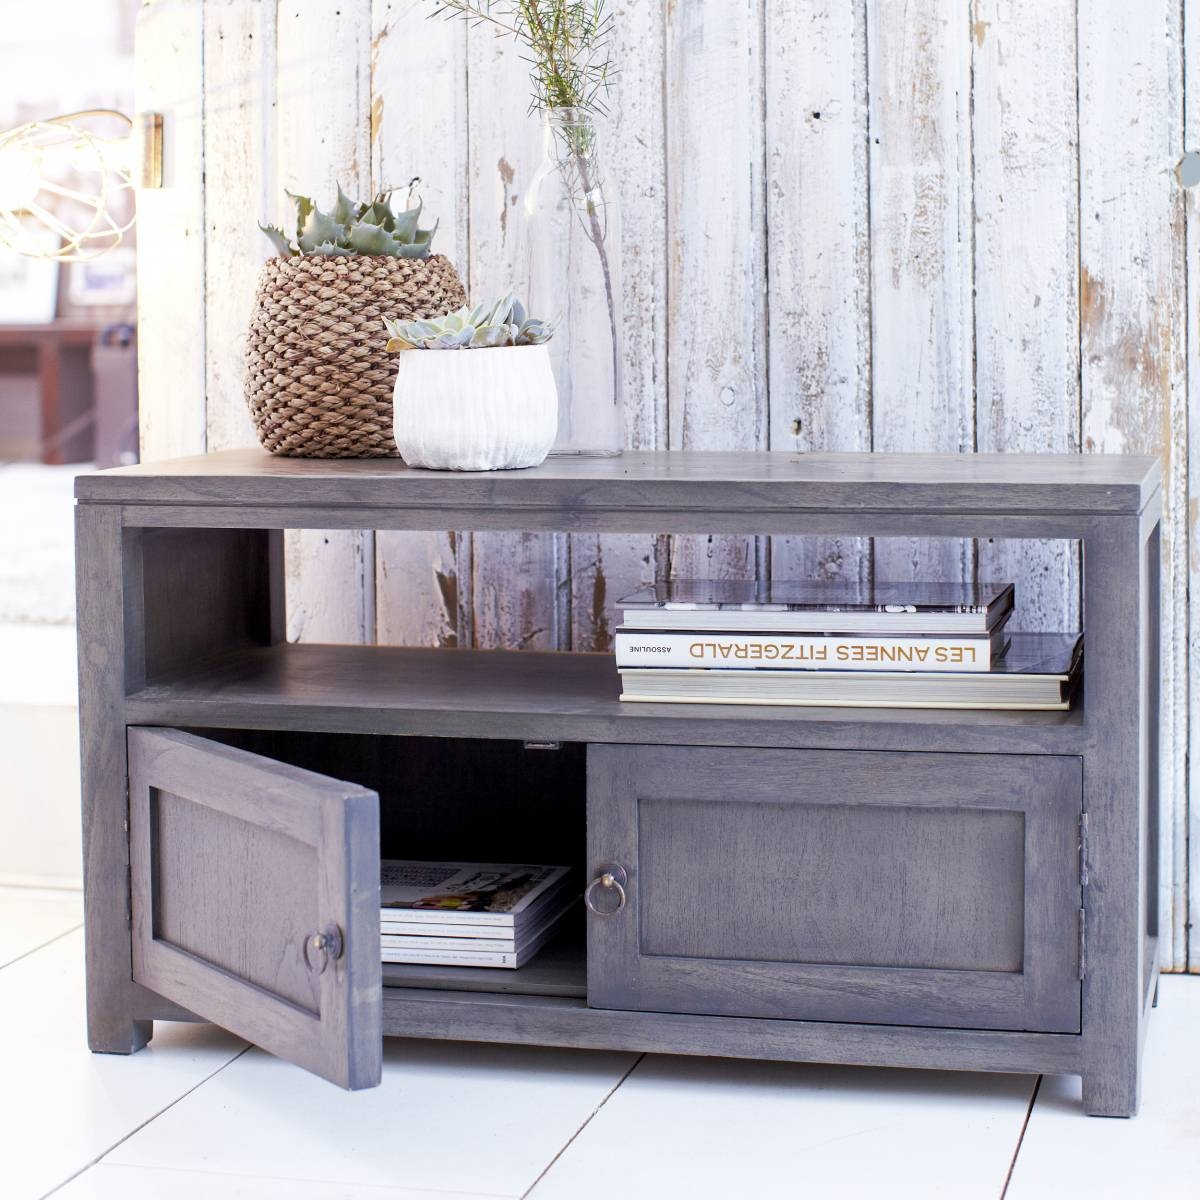 Solid Grey Tv Stand : How To Make Grey Tv Stand – Indoor & Outdoor in Grey Wood Tv Stands (Image 4 of 15)